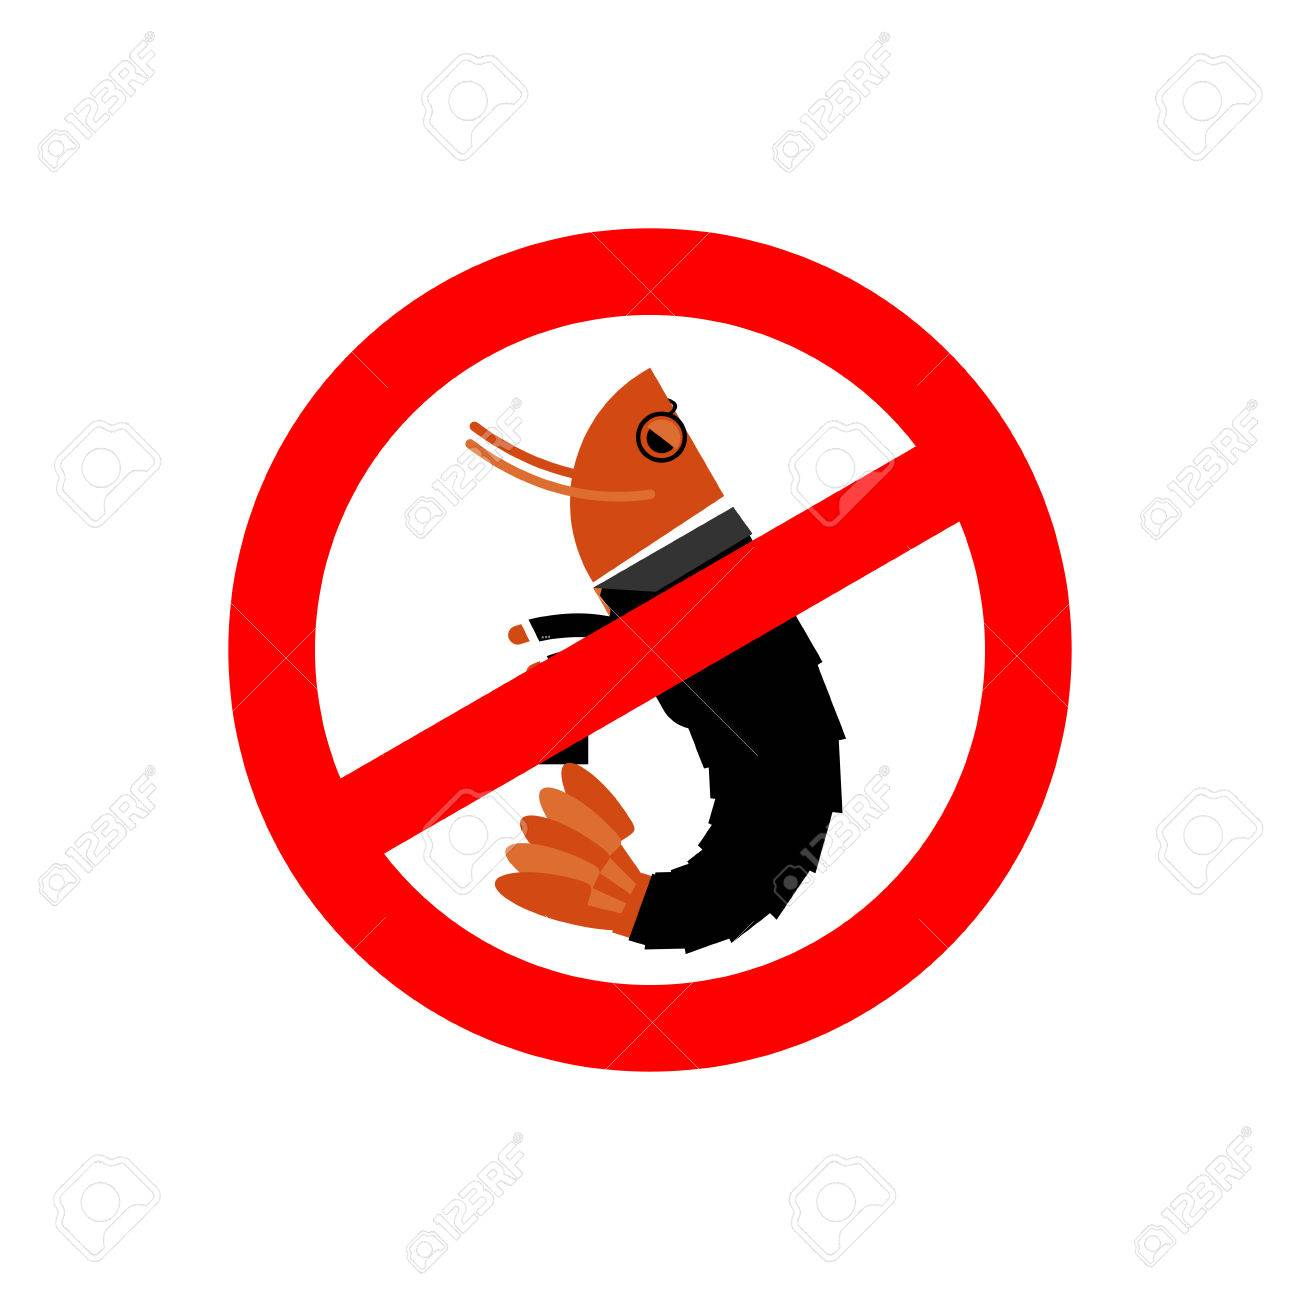 Stop Office Plankton Prohibited Shrimp In Suit Red Prohibition